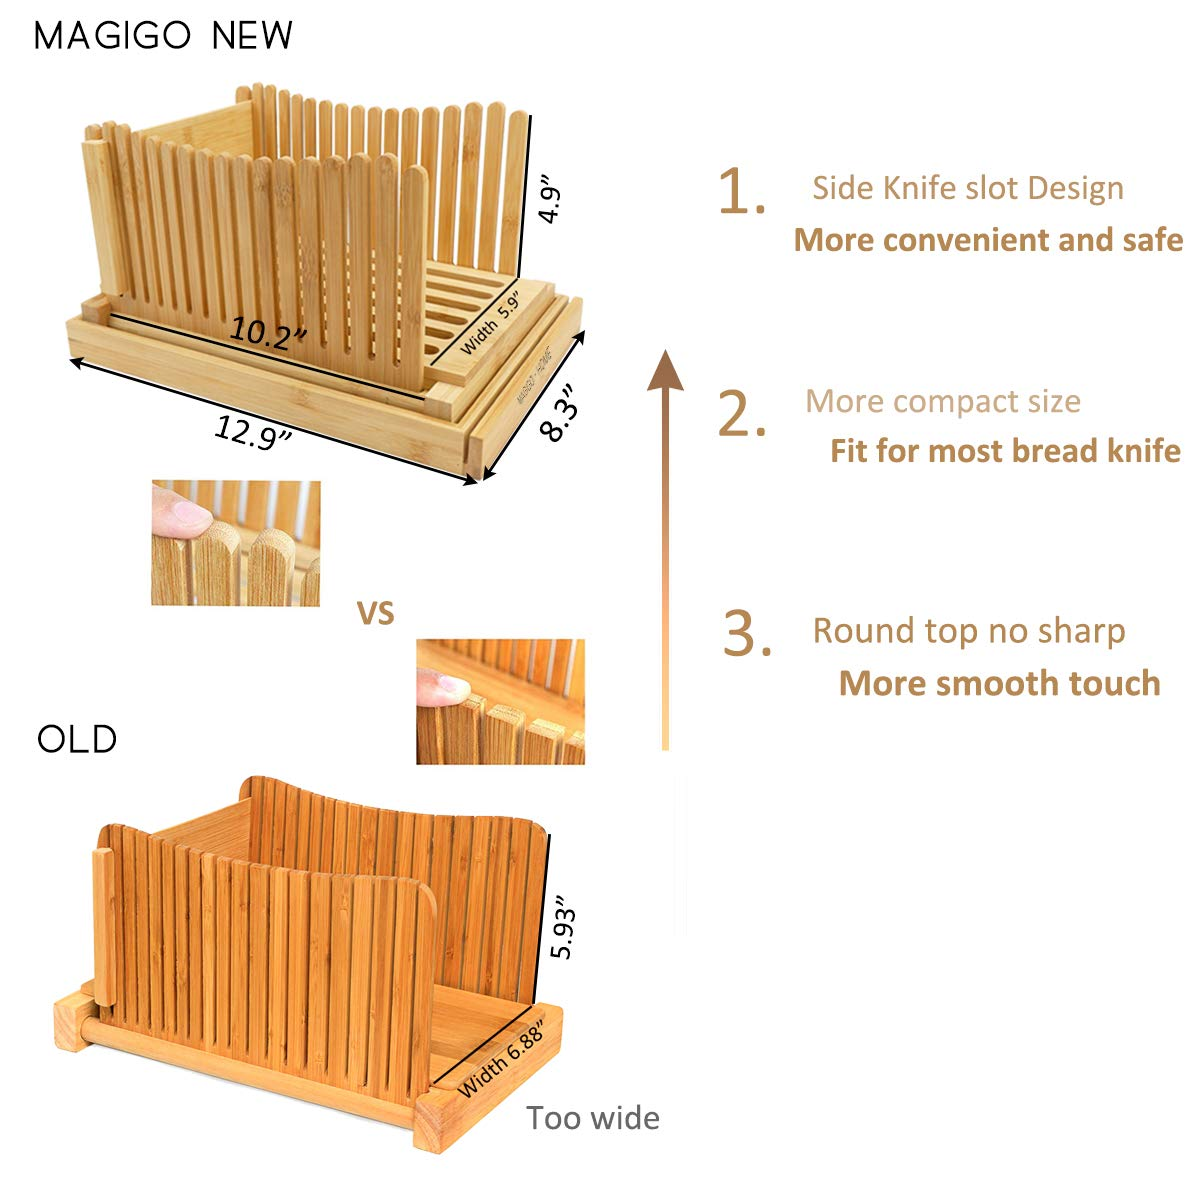 MAGIGO Nature Bamboo Foldable Bread Slicer with Crumb Catcher Tray, Bread Slicing Guide and Knife Rest for Homemade Bread & Loaf Cakes, Thickness Adjustable, Contains 20 Bread Bags & 20 Twist Ties by MAGIGO (Image #5)